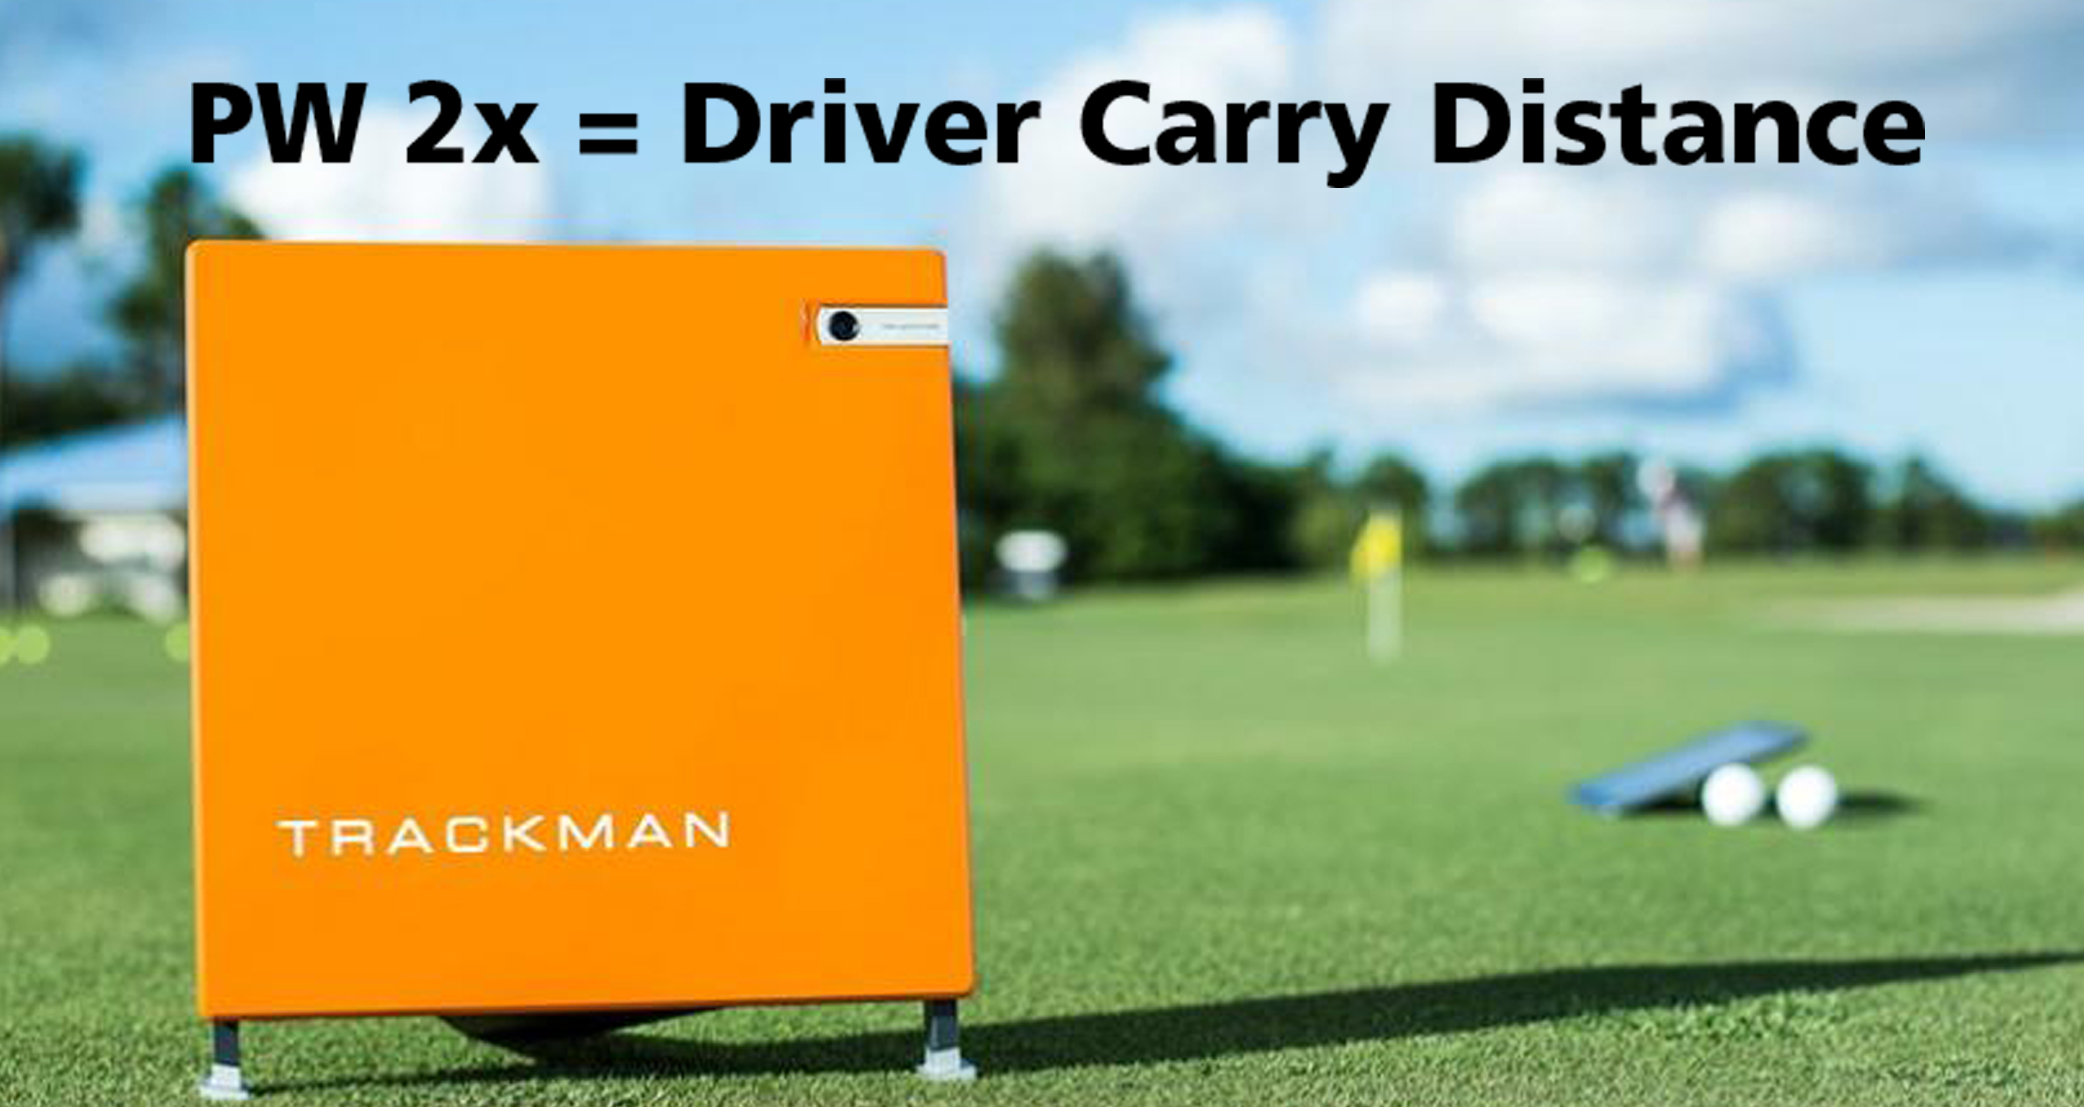 PWx2=Driver Carry Distance.jpg